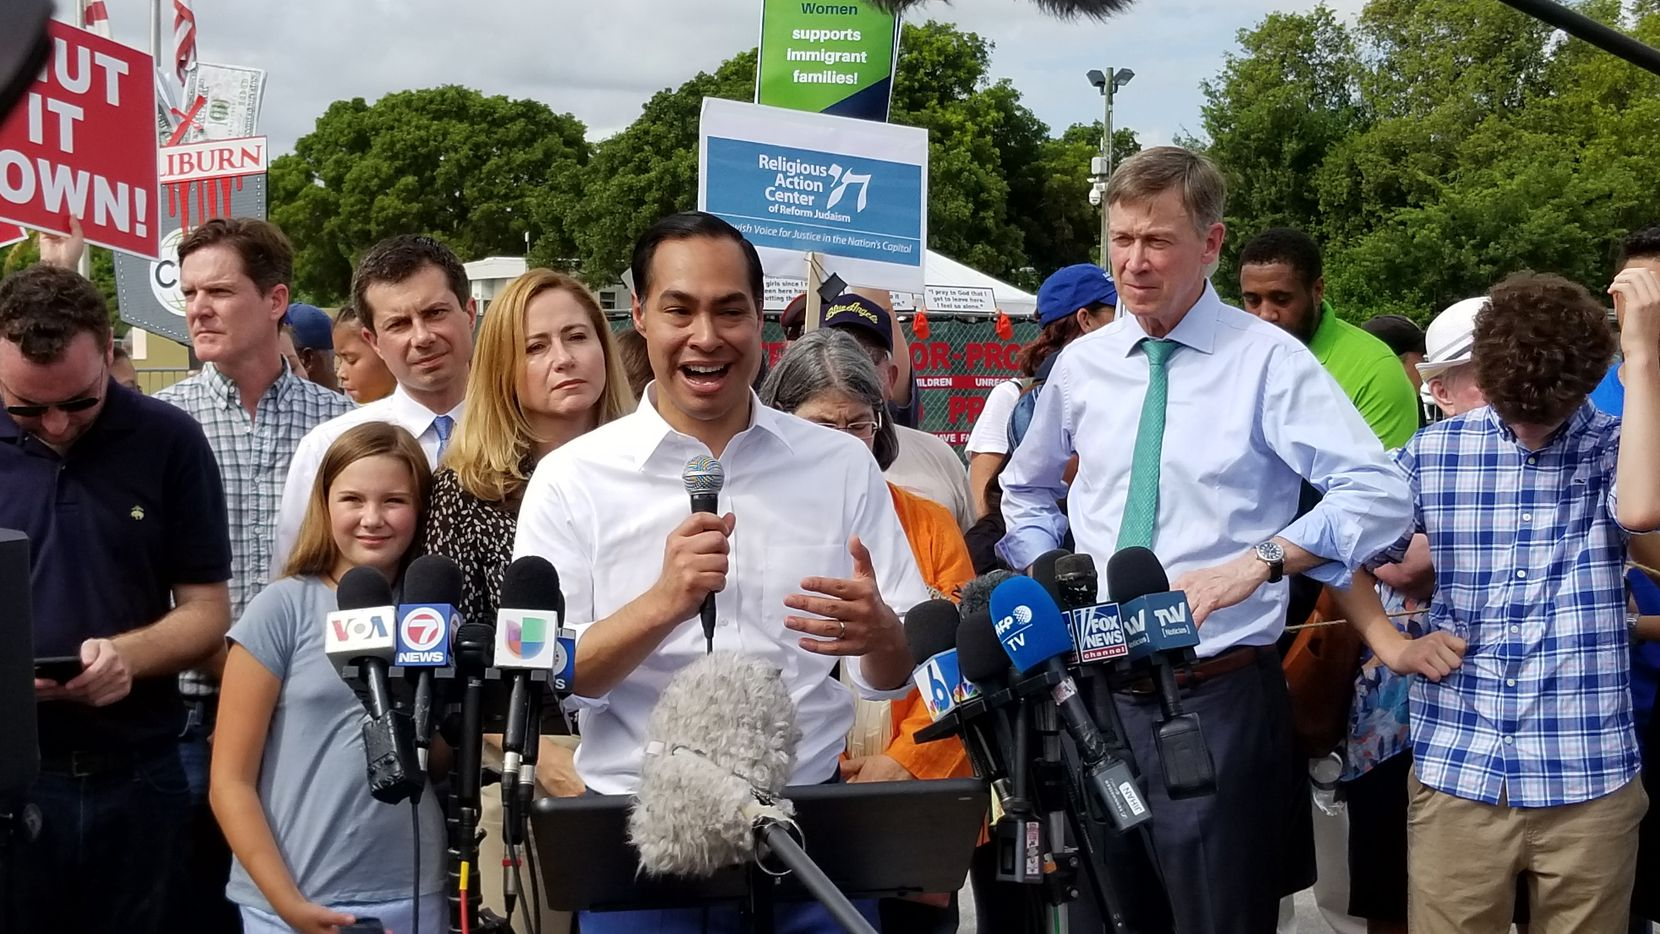 Julián Castro speaks to news media outside the migrant detention center in Homestead, Fla.. Behind him are two other presidential candidates, Pete Buttigieg (left) and John Hickenlooper, each in a shirt and tie.